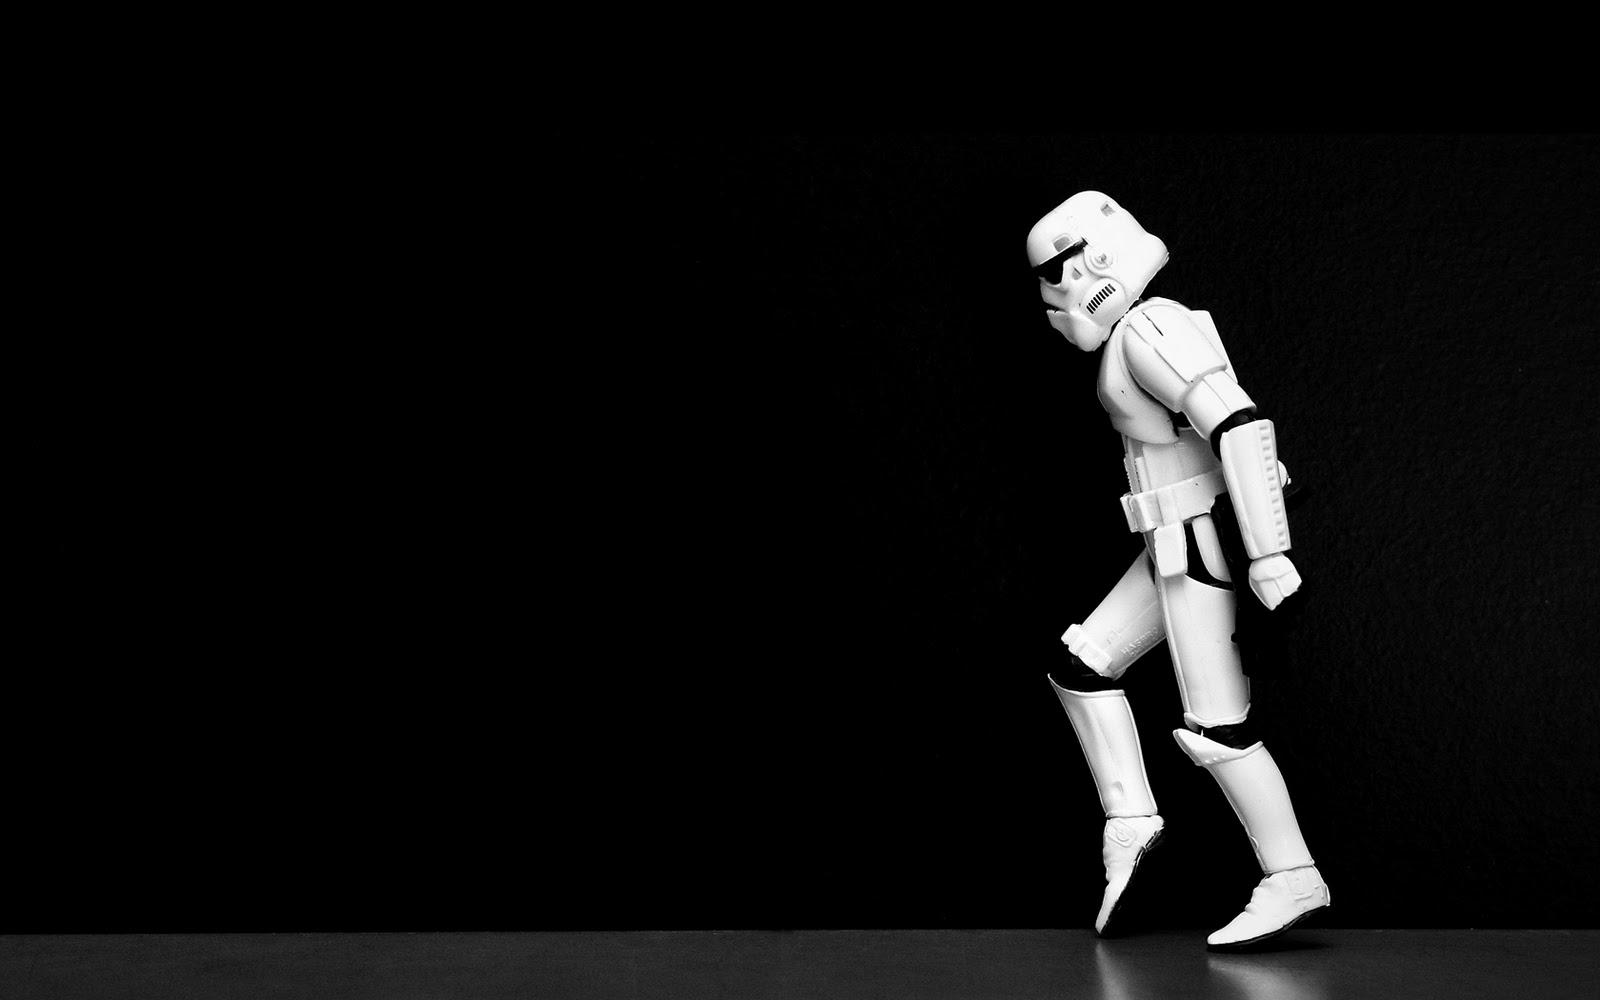 Related Wallpaper for funny star wars wallpapers hd desktop 1862